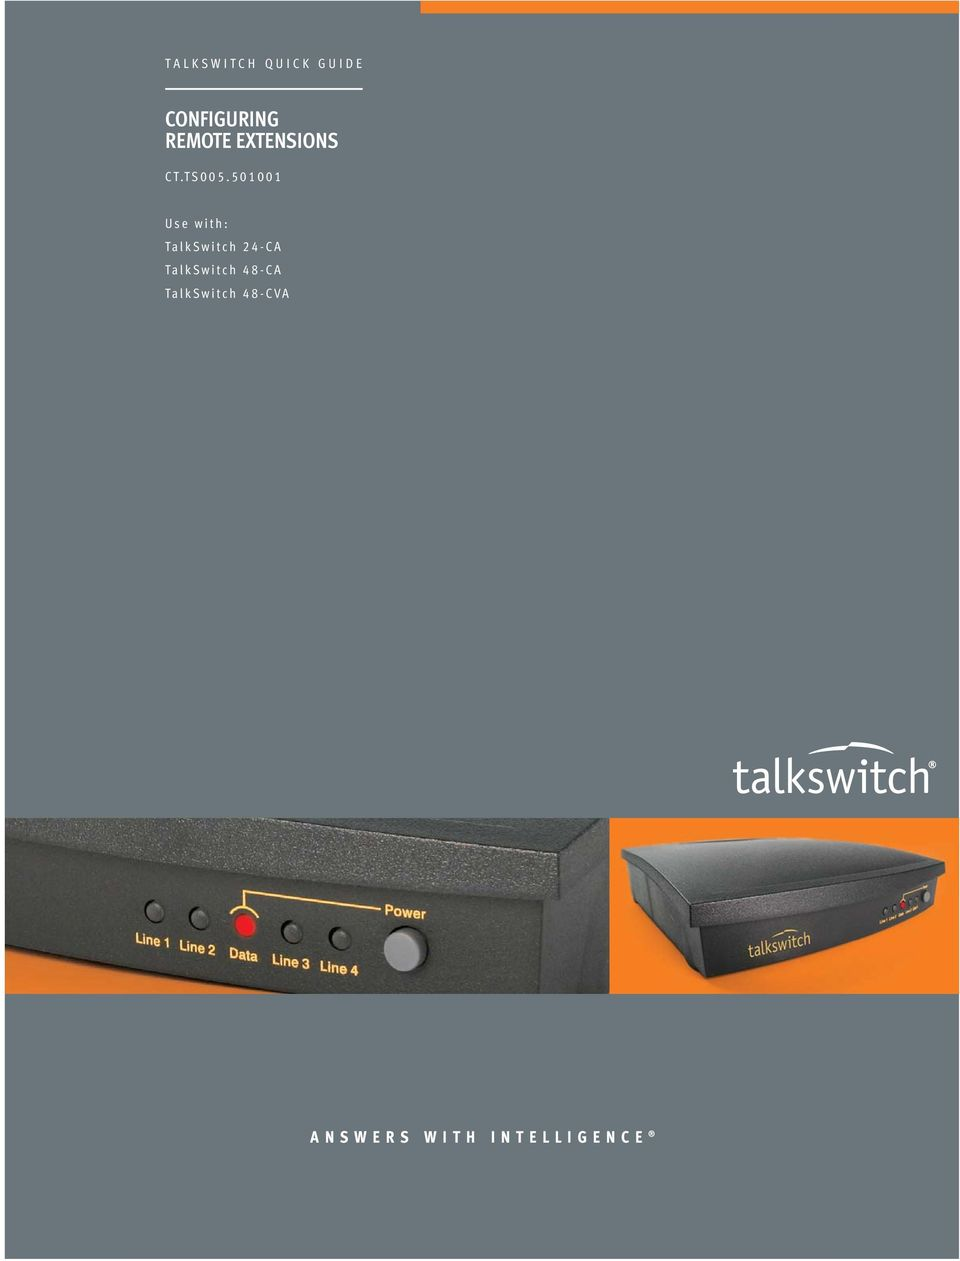 501001 Use with: TalkSwitch 24-CA